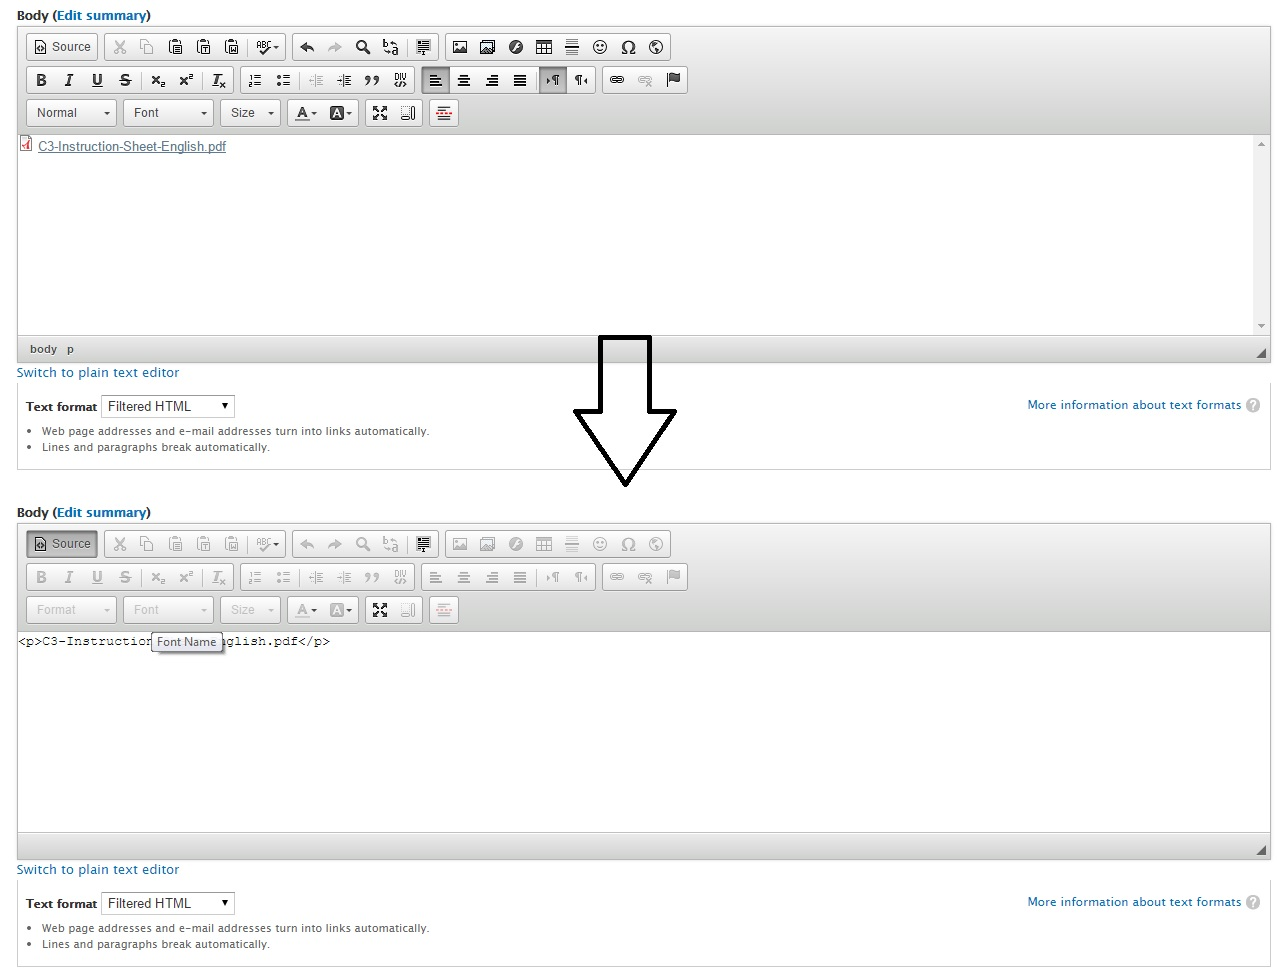 Link / Icon to media document is stripped out by ckeditor